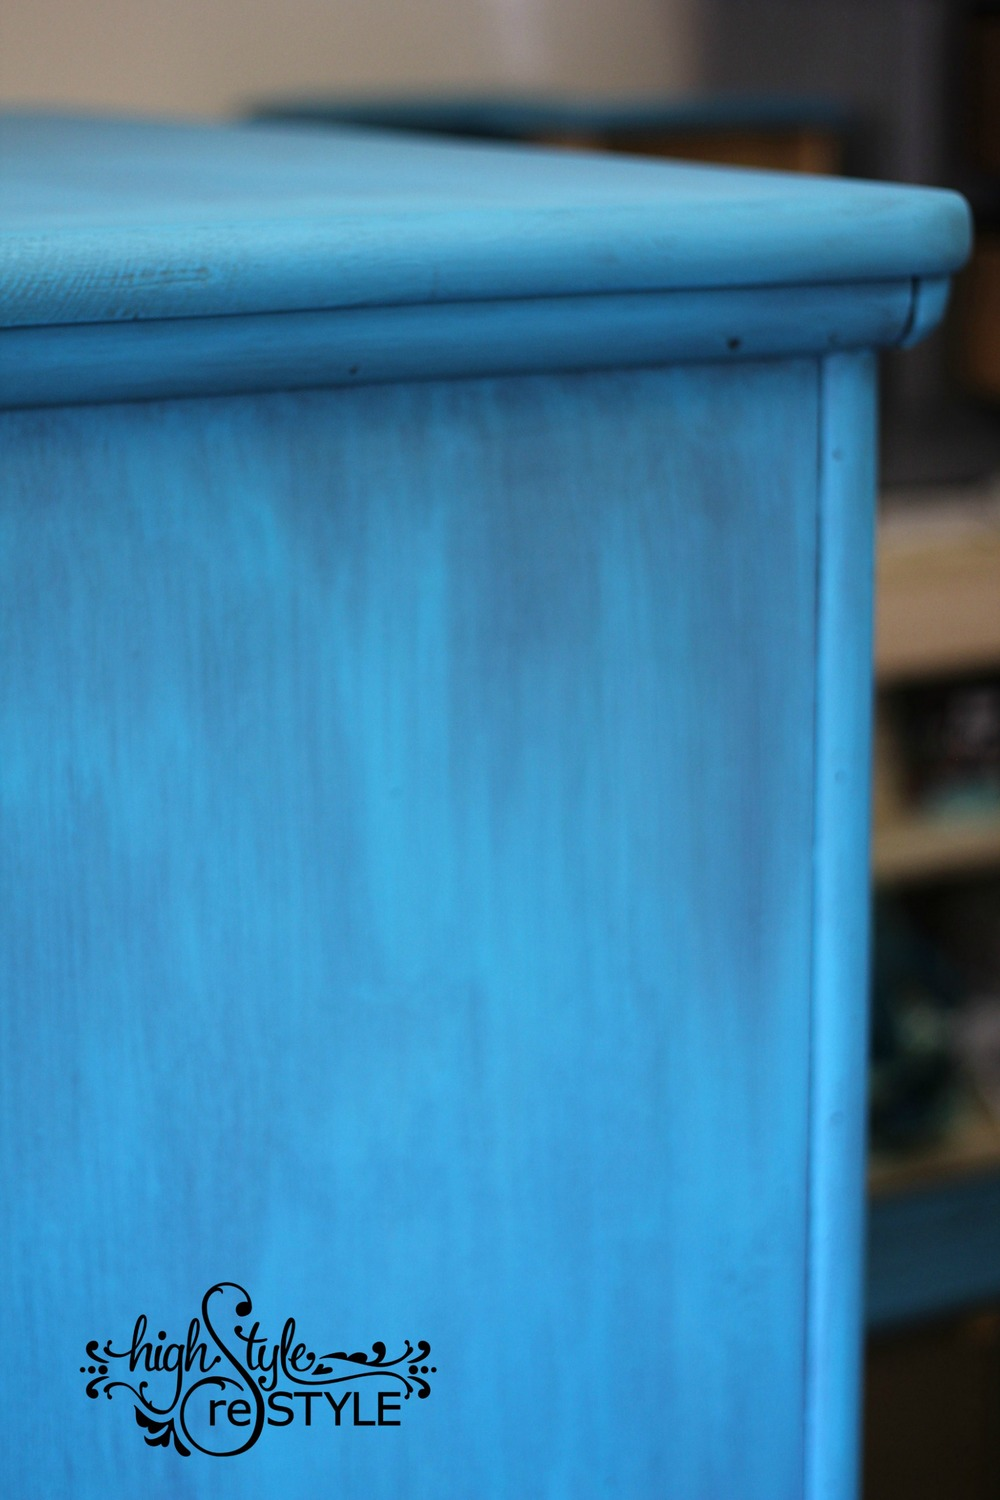 Sneak peek of van Gogh Furniture Paintology 'Confidence'